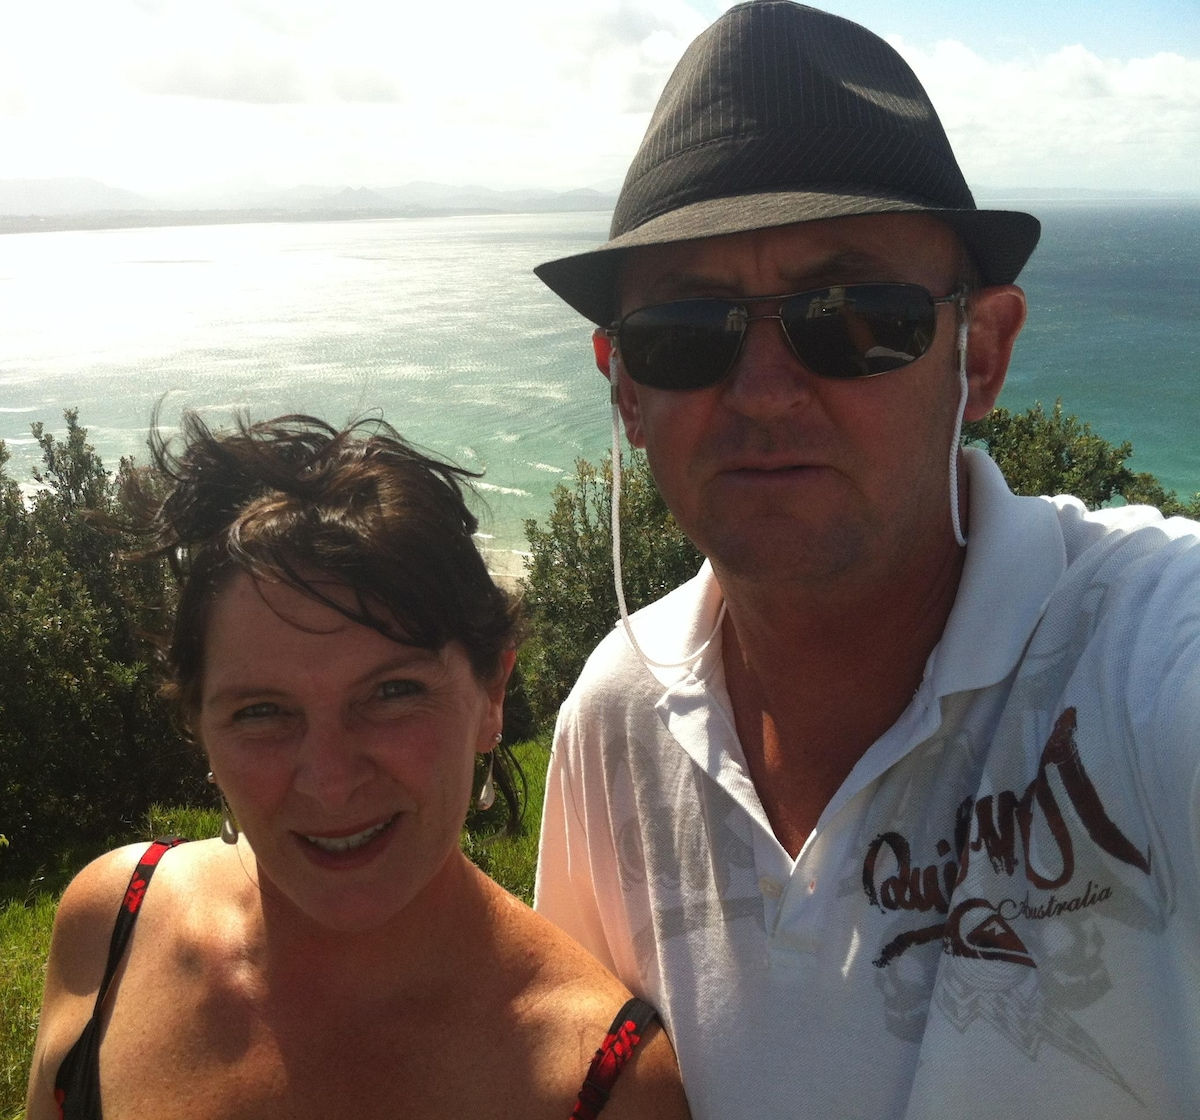 We are an easy going couple who enjoy travelling,